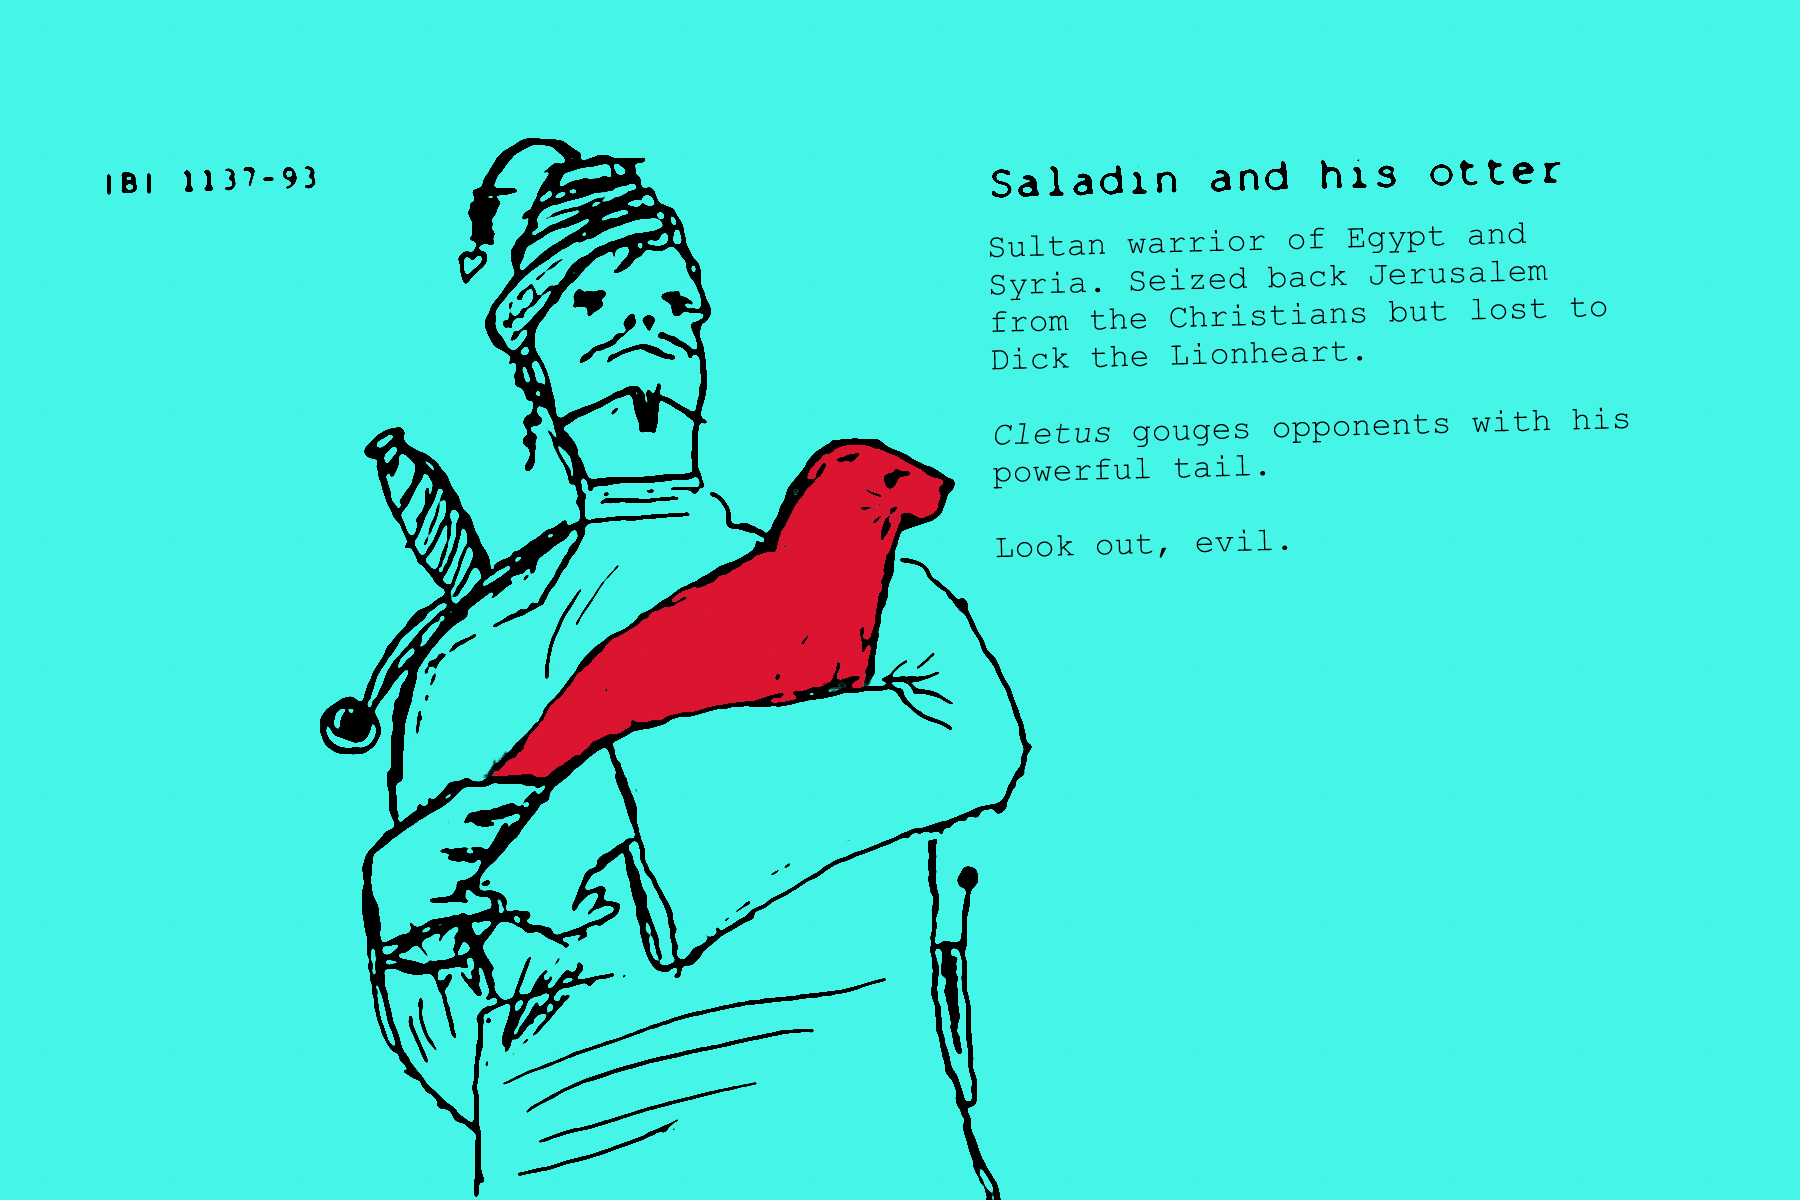 warriors and their pets_02 saladin.jpg